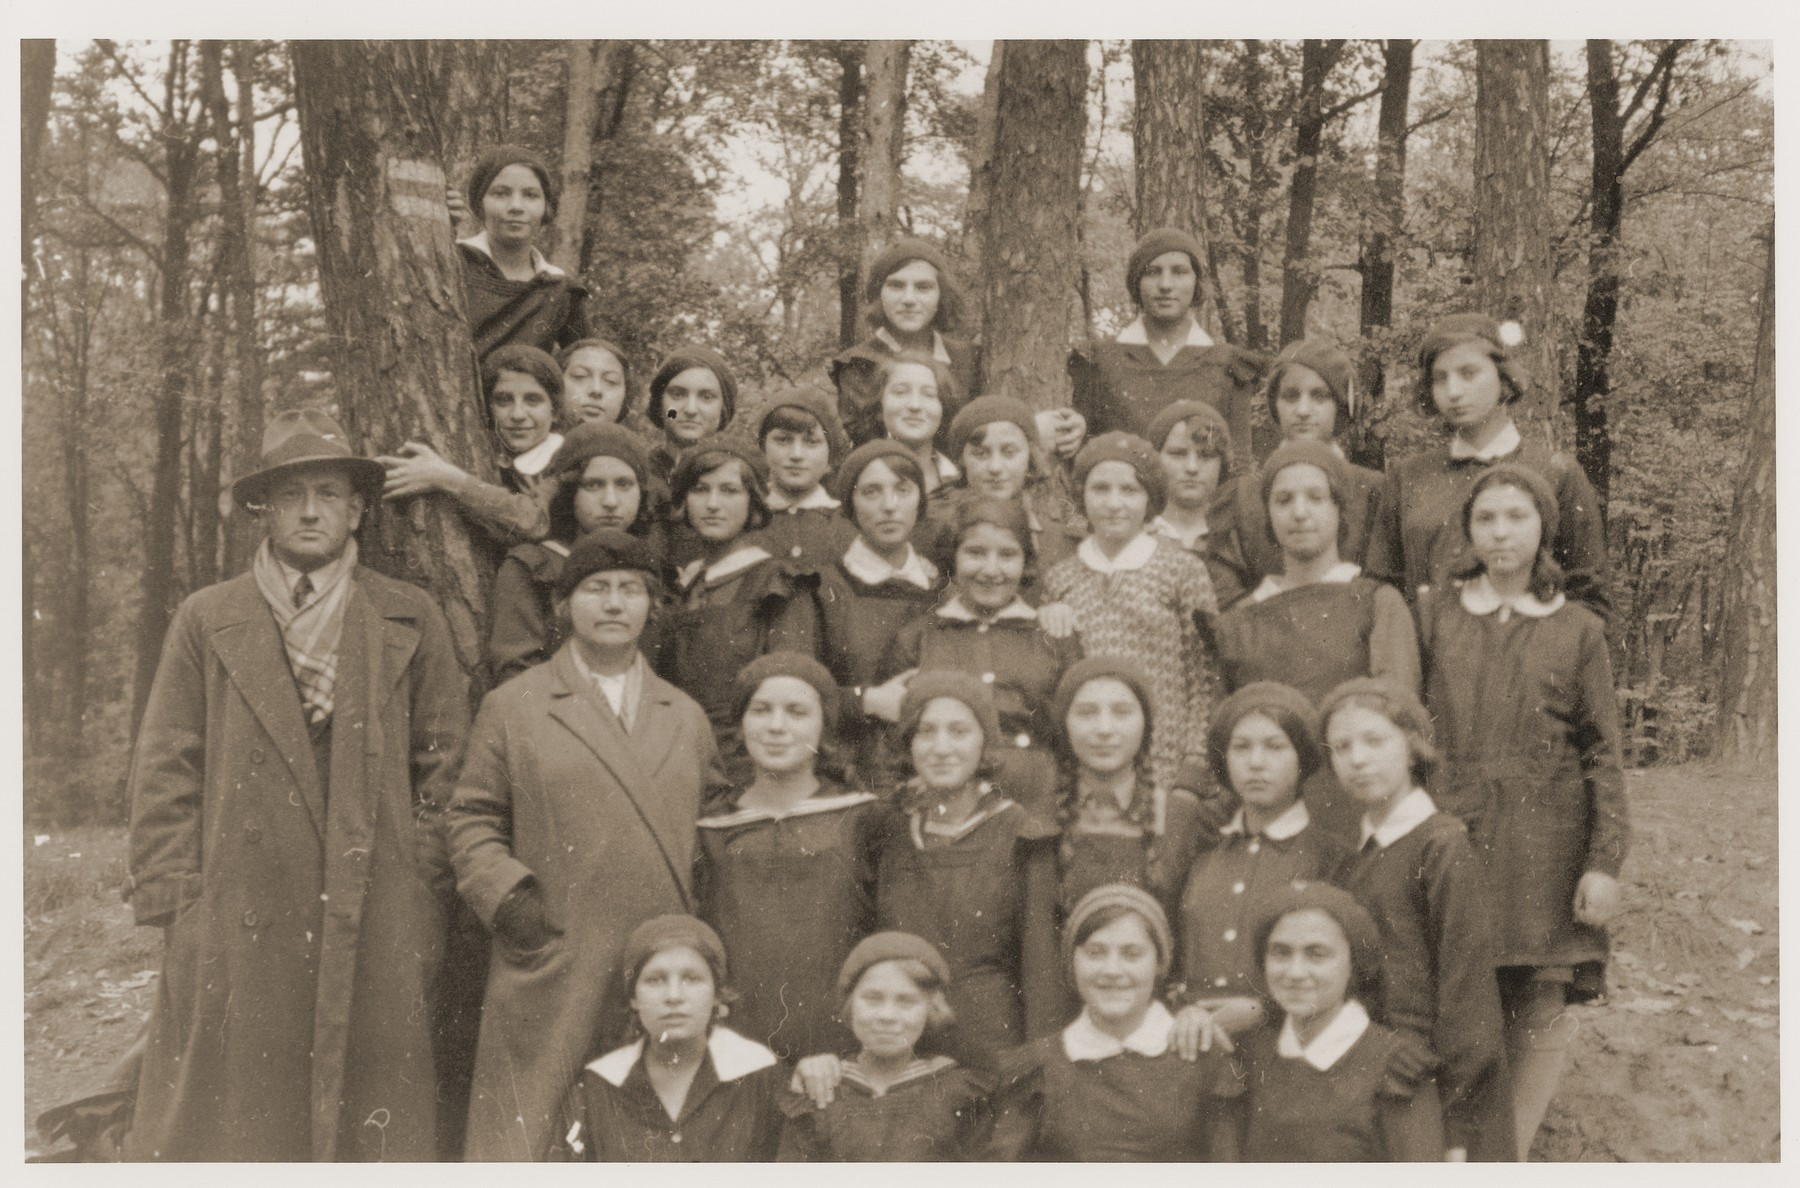 Group portrait of students and teachers of the Yehudia Jewish gymnasium for girls during an outing to a forest.